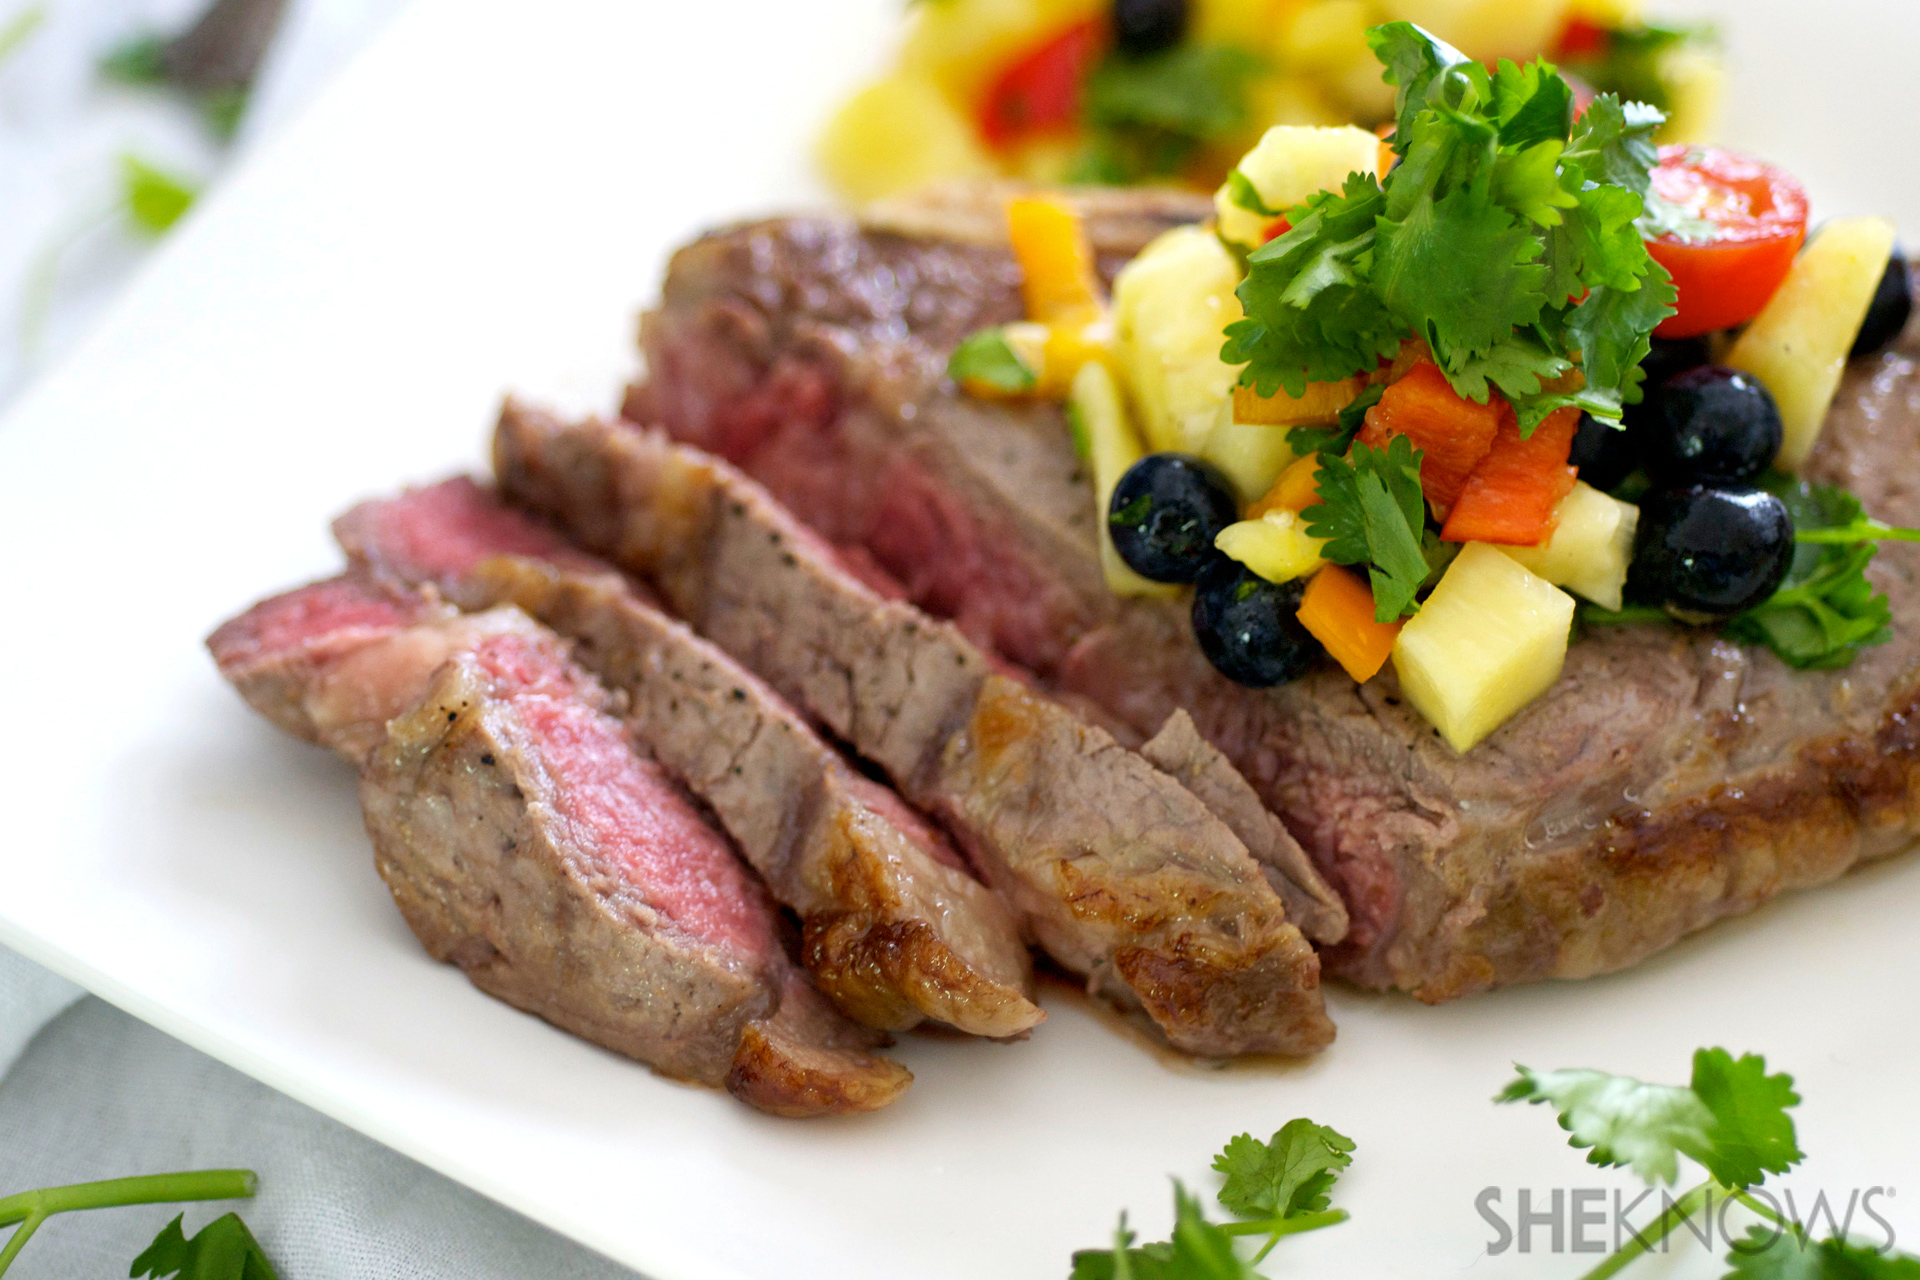 Sizzling steak with pineapple rum salsa